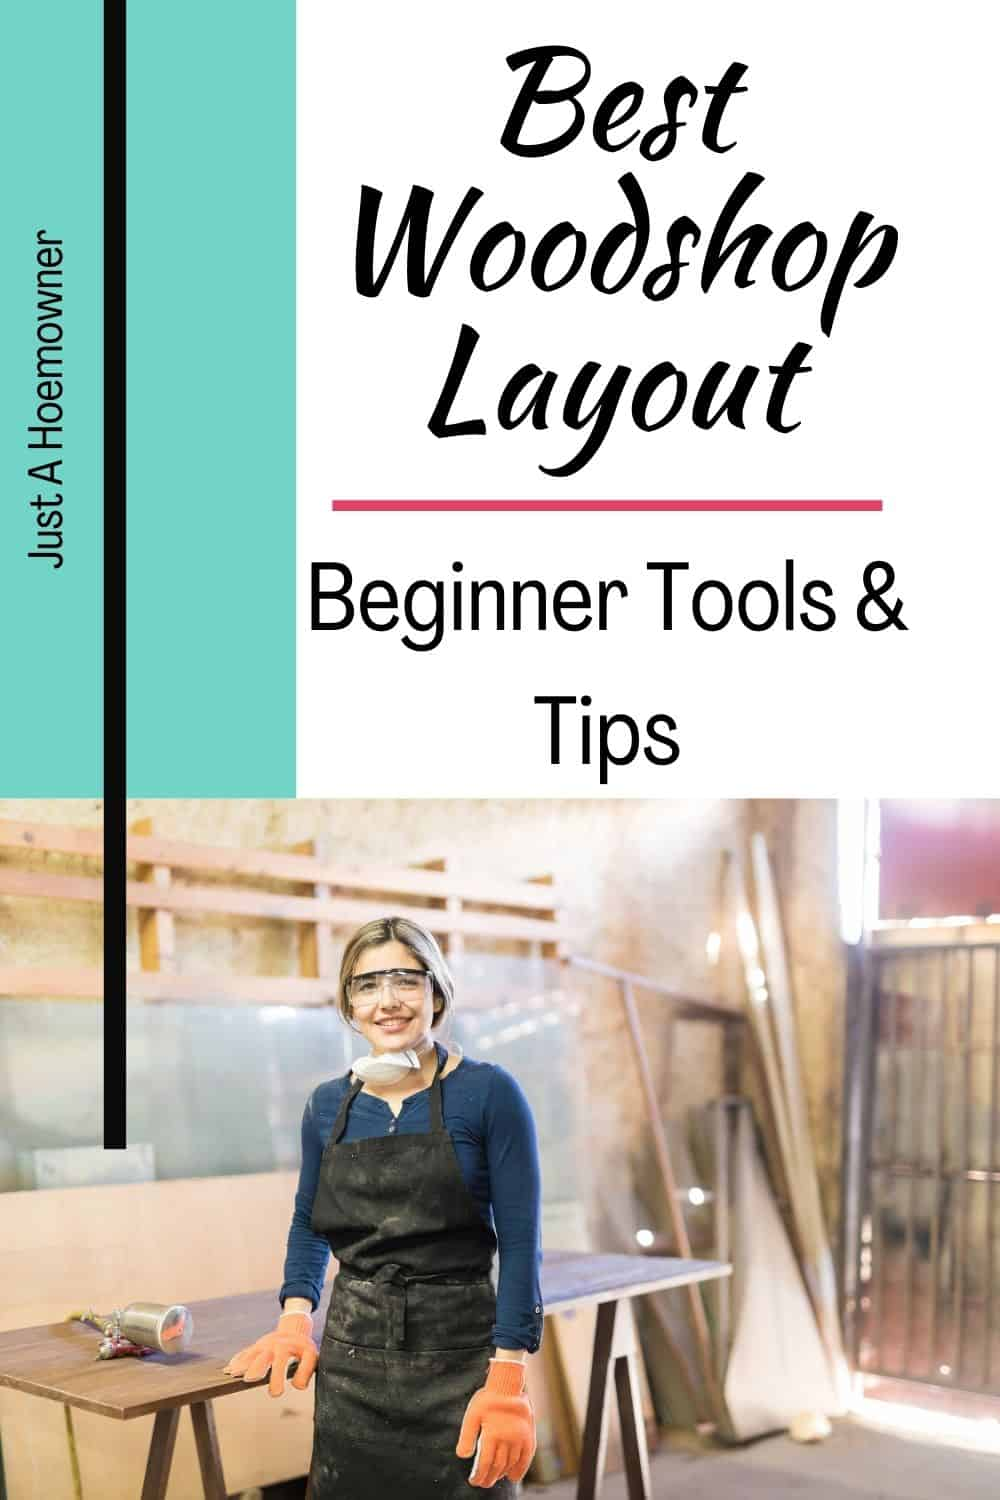 Best Woodshop Layout For Beginners